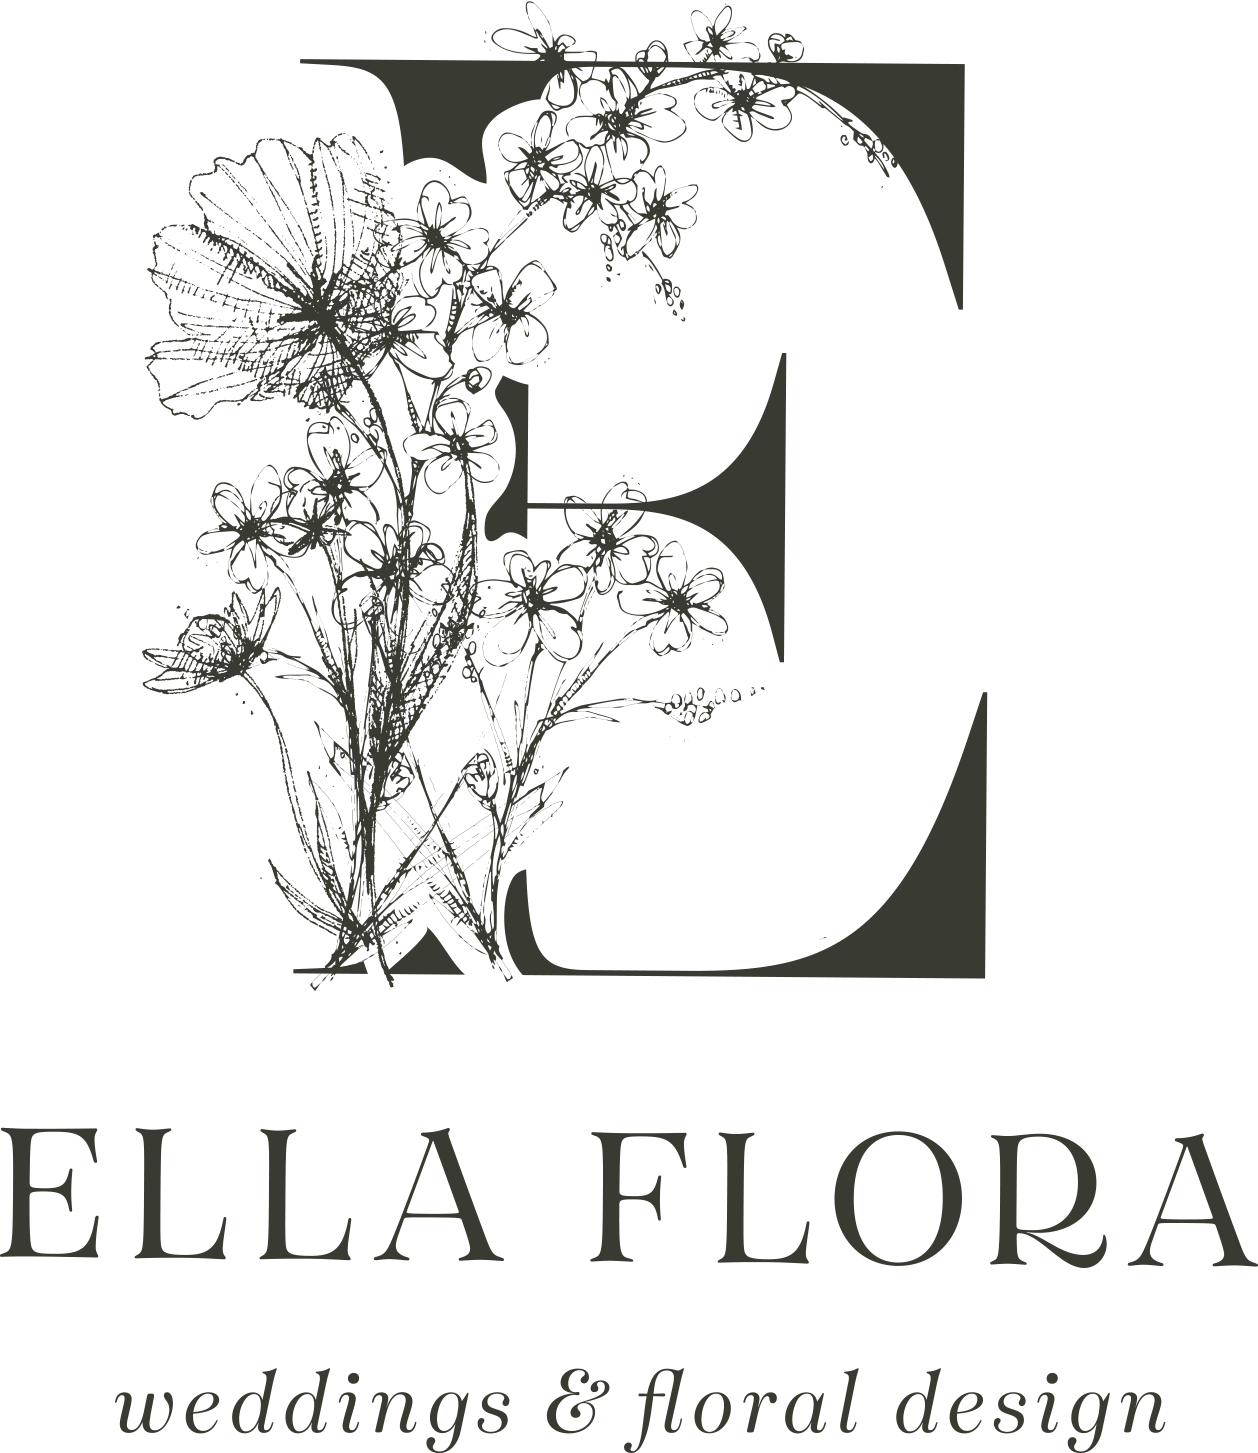 Ella Flora Weddings and Floral Design